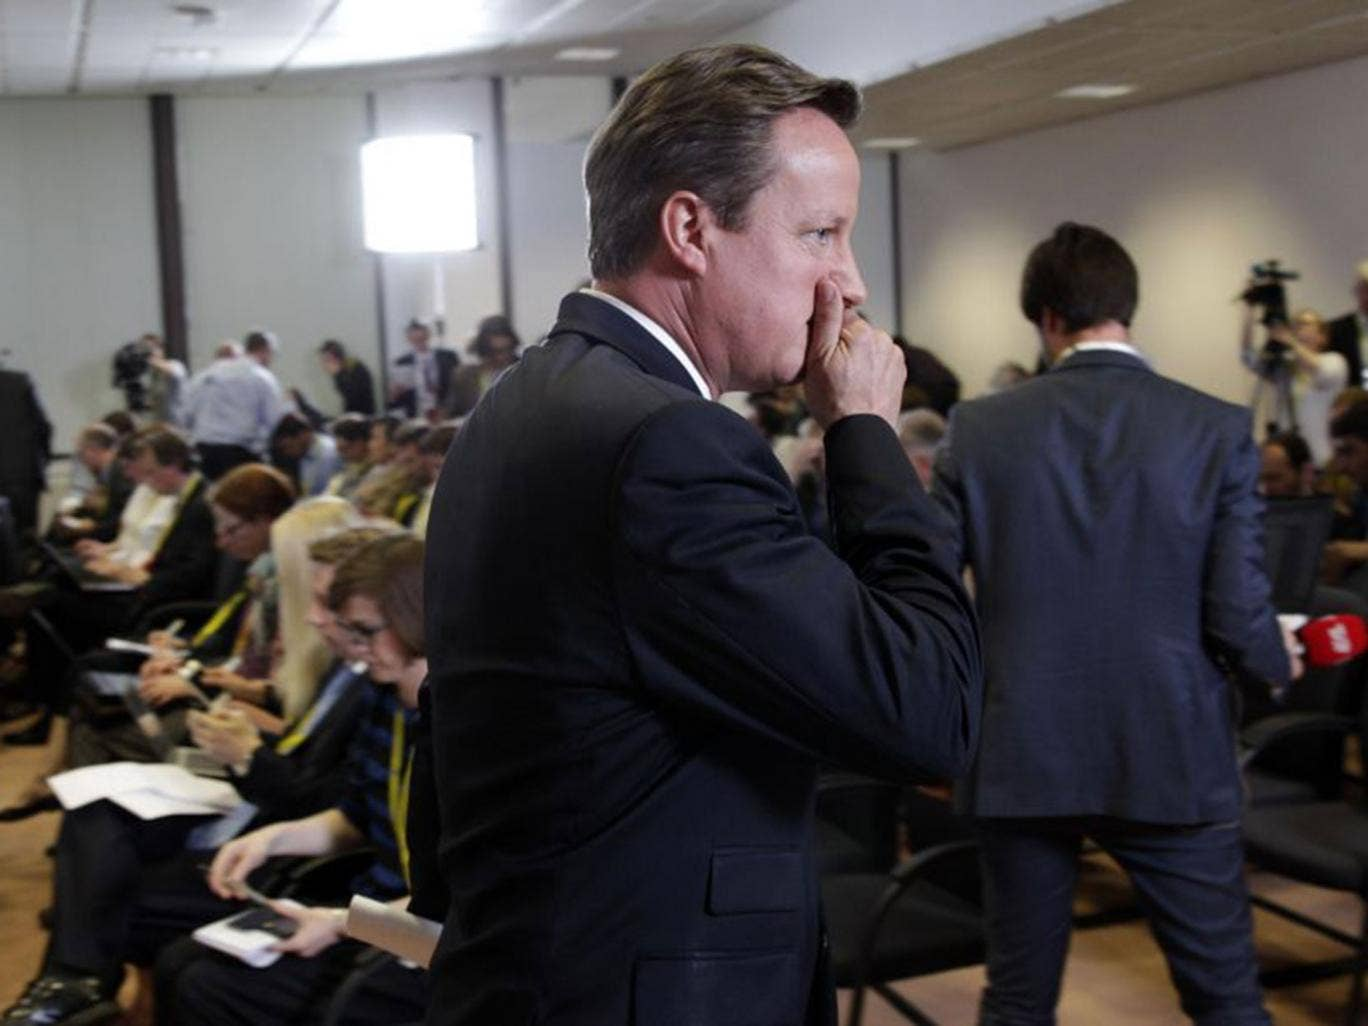 Harder job: The Prime Minister has been clear that he wants Britain to stay in the EU